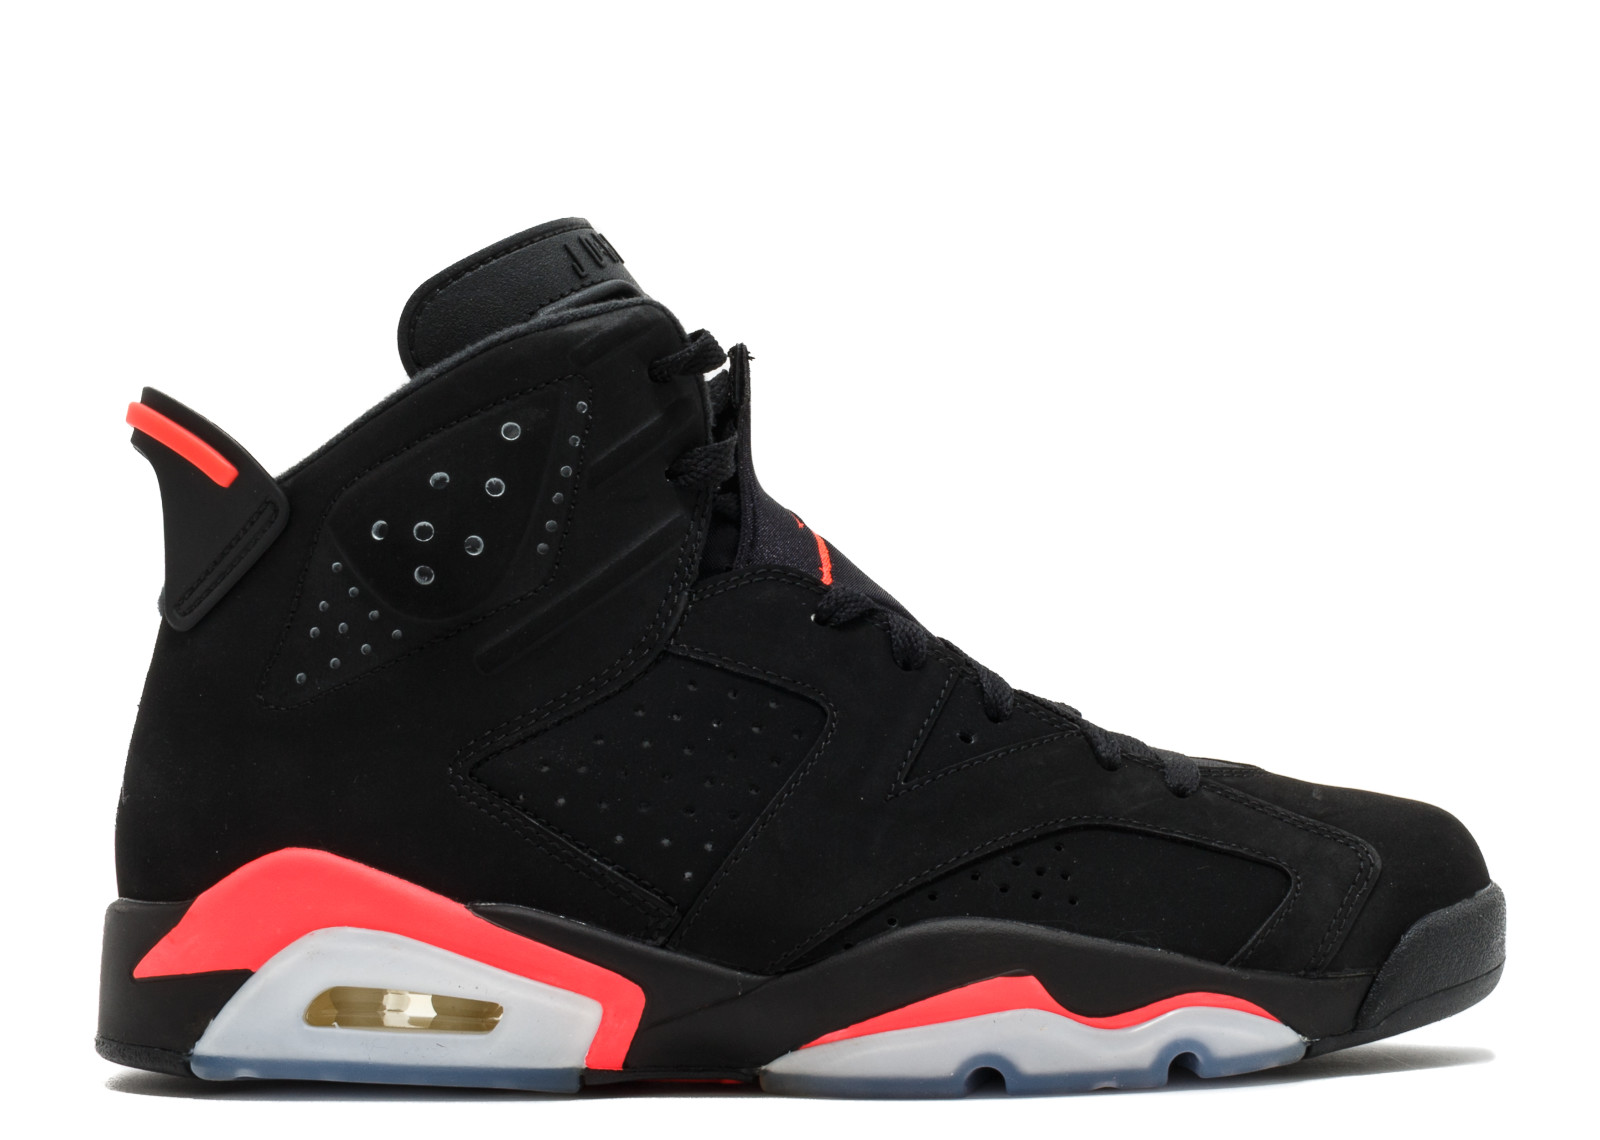 air jordan 6 low infrared buy mattress